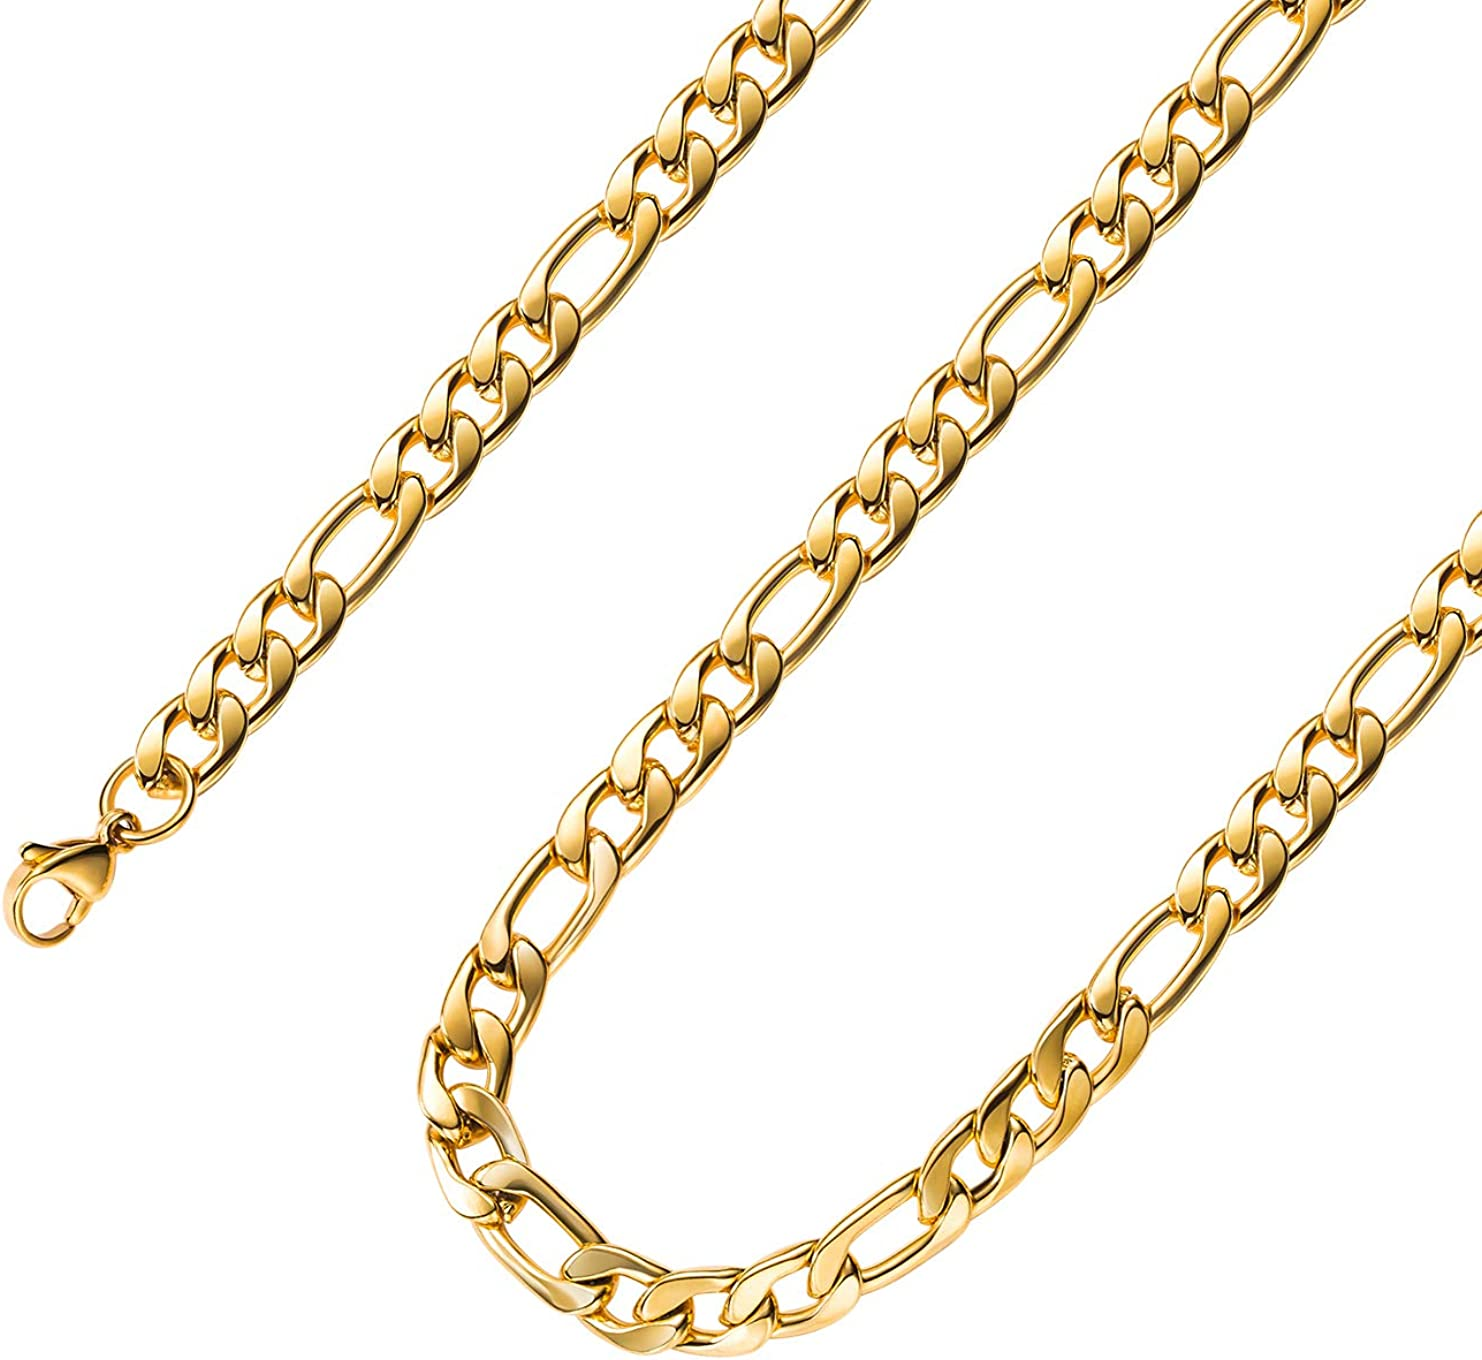 Estendly 18k Real Gold Plated 16 Inches Figaro Chain Necklace 4mm Stainless Steel Figaro Link Chain For Men Women Amazon Com